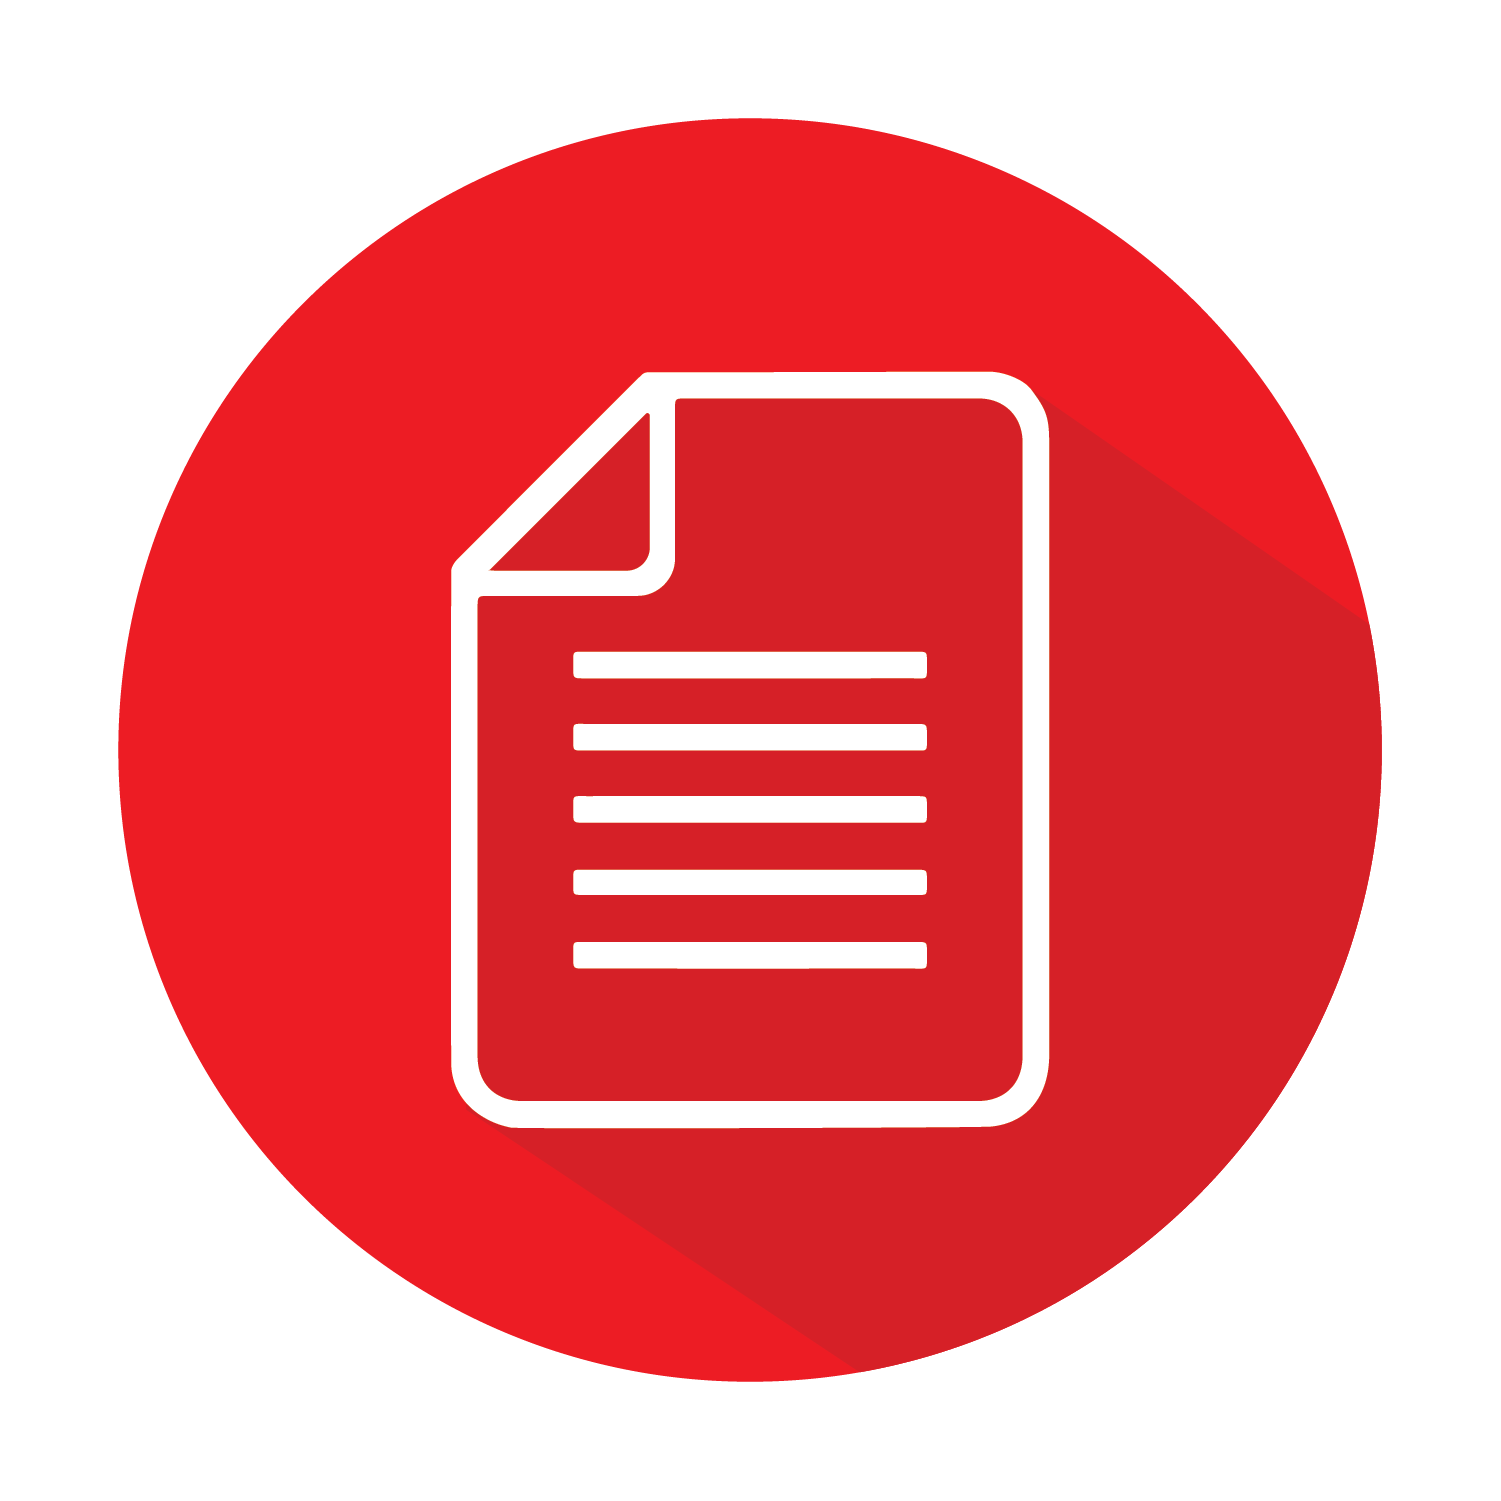 Organization   One easy-to-access site with all your standards, forms, and critical information